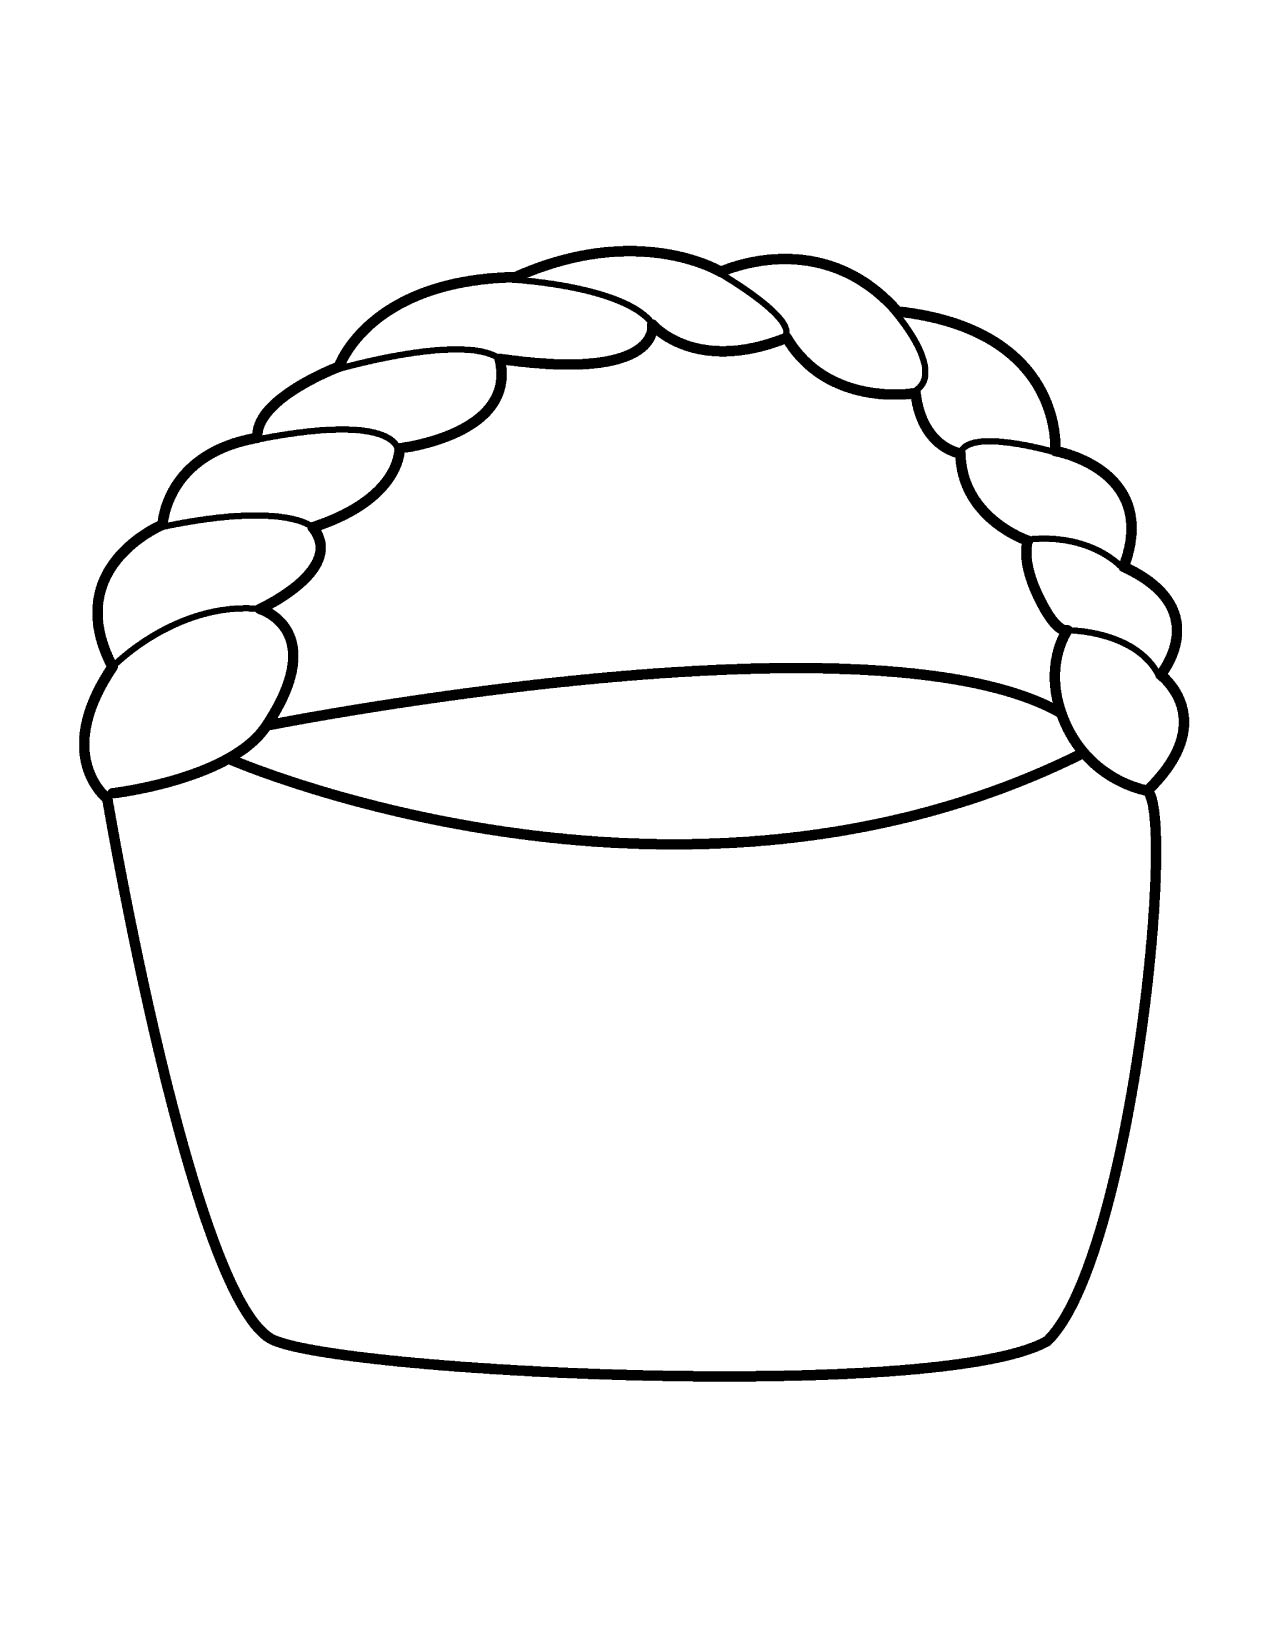 Bread Basket Clipart Black And White